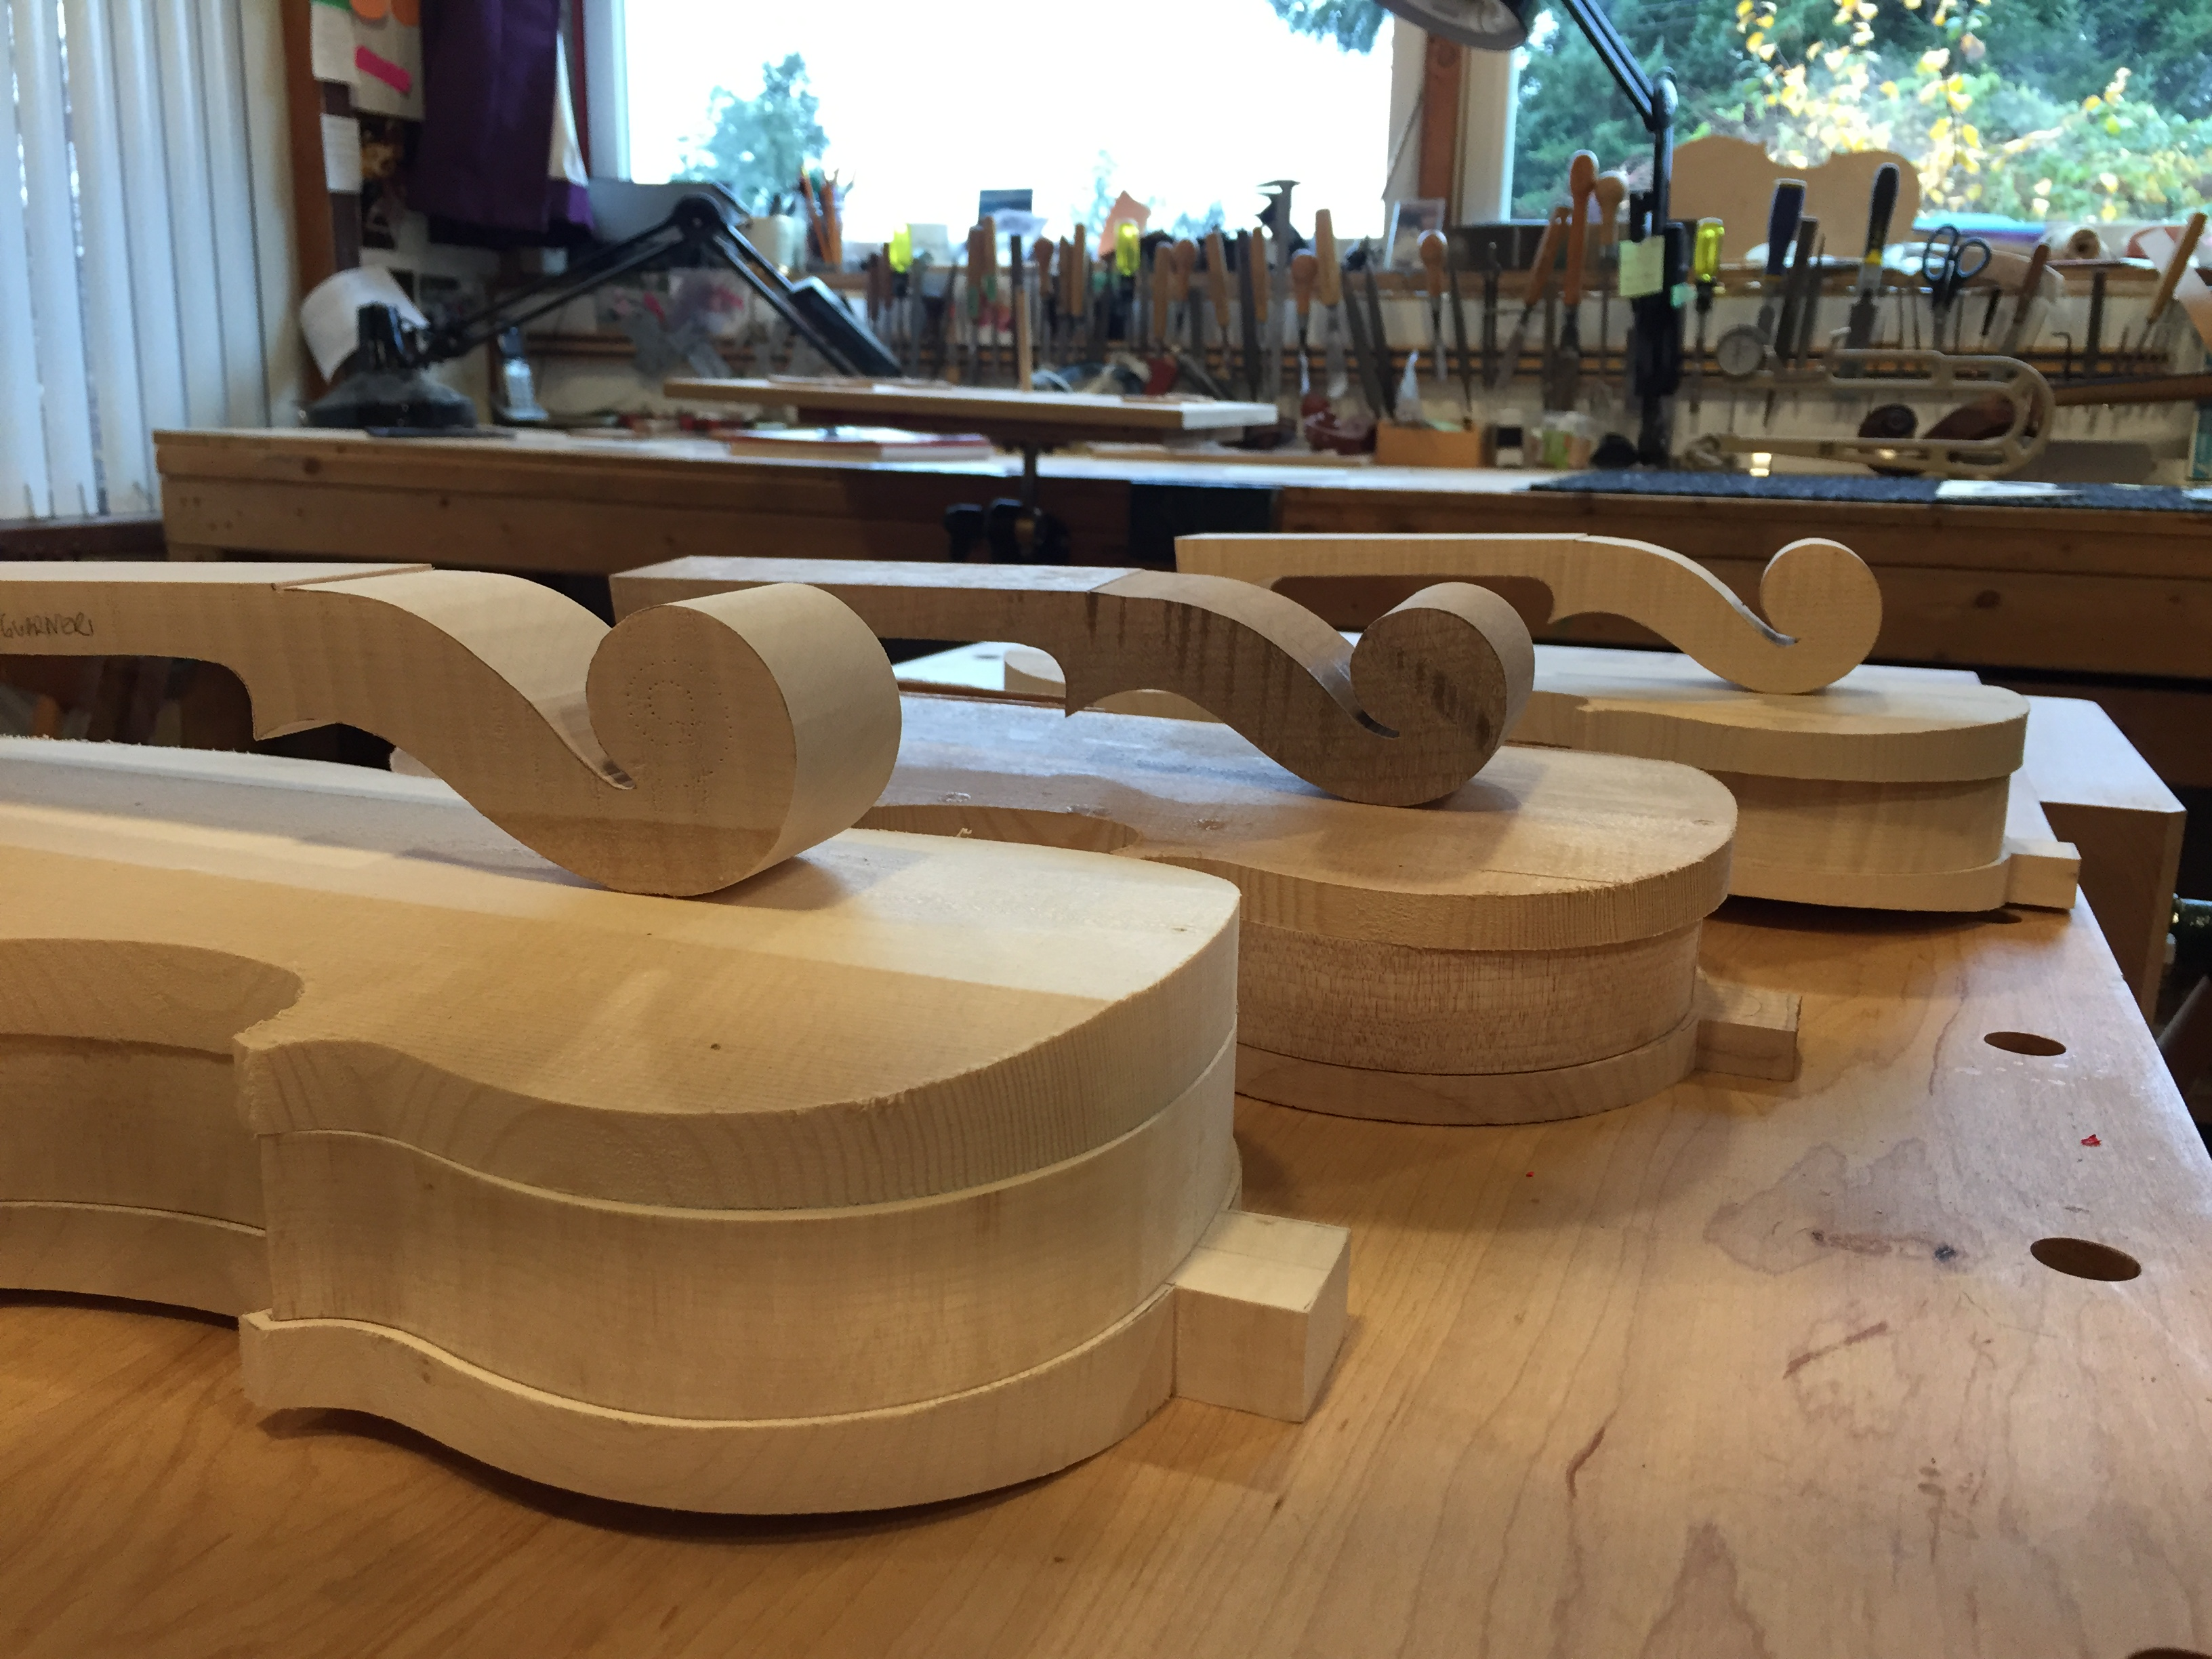 3 violins ready to carve.